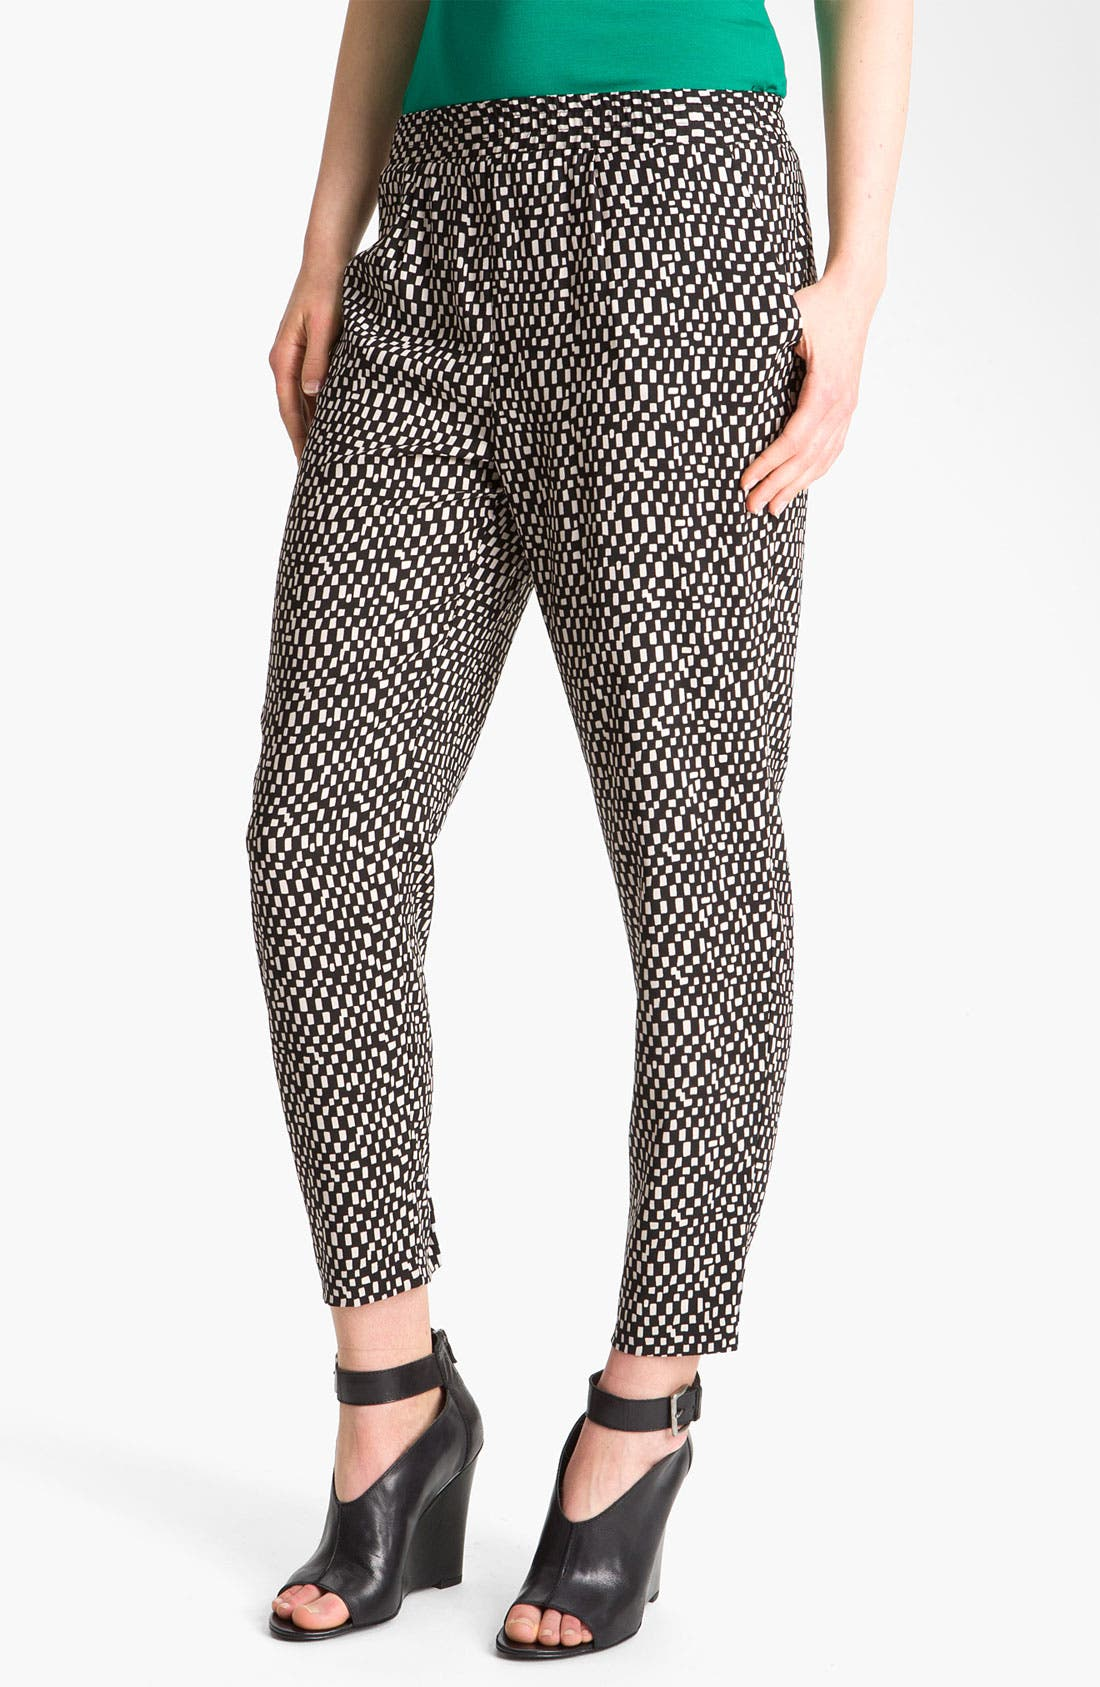 Main Image - Vince Camuto 'Spaced Tiles' Pegged Pants